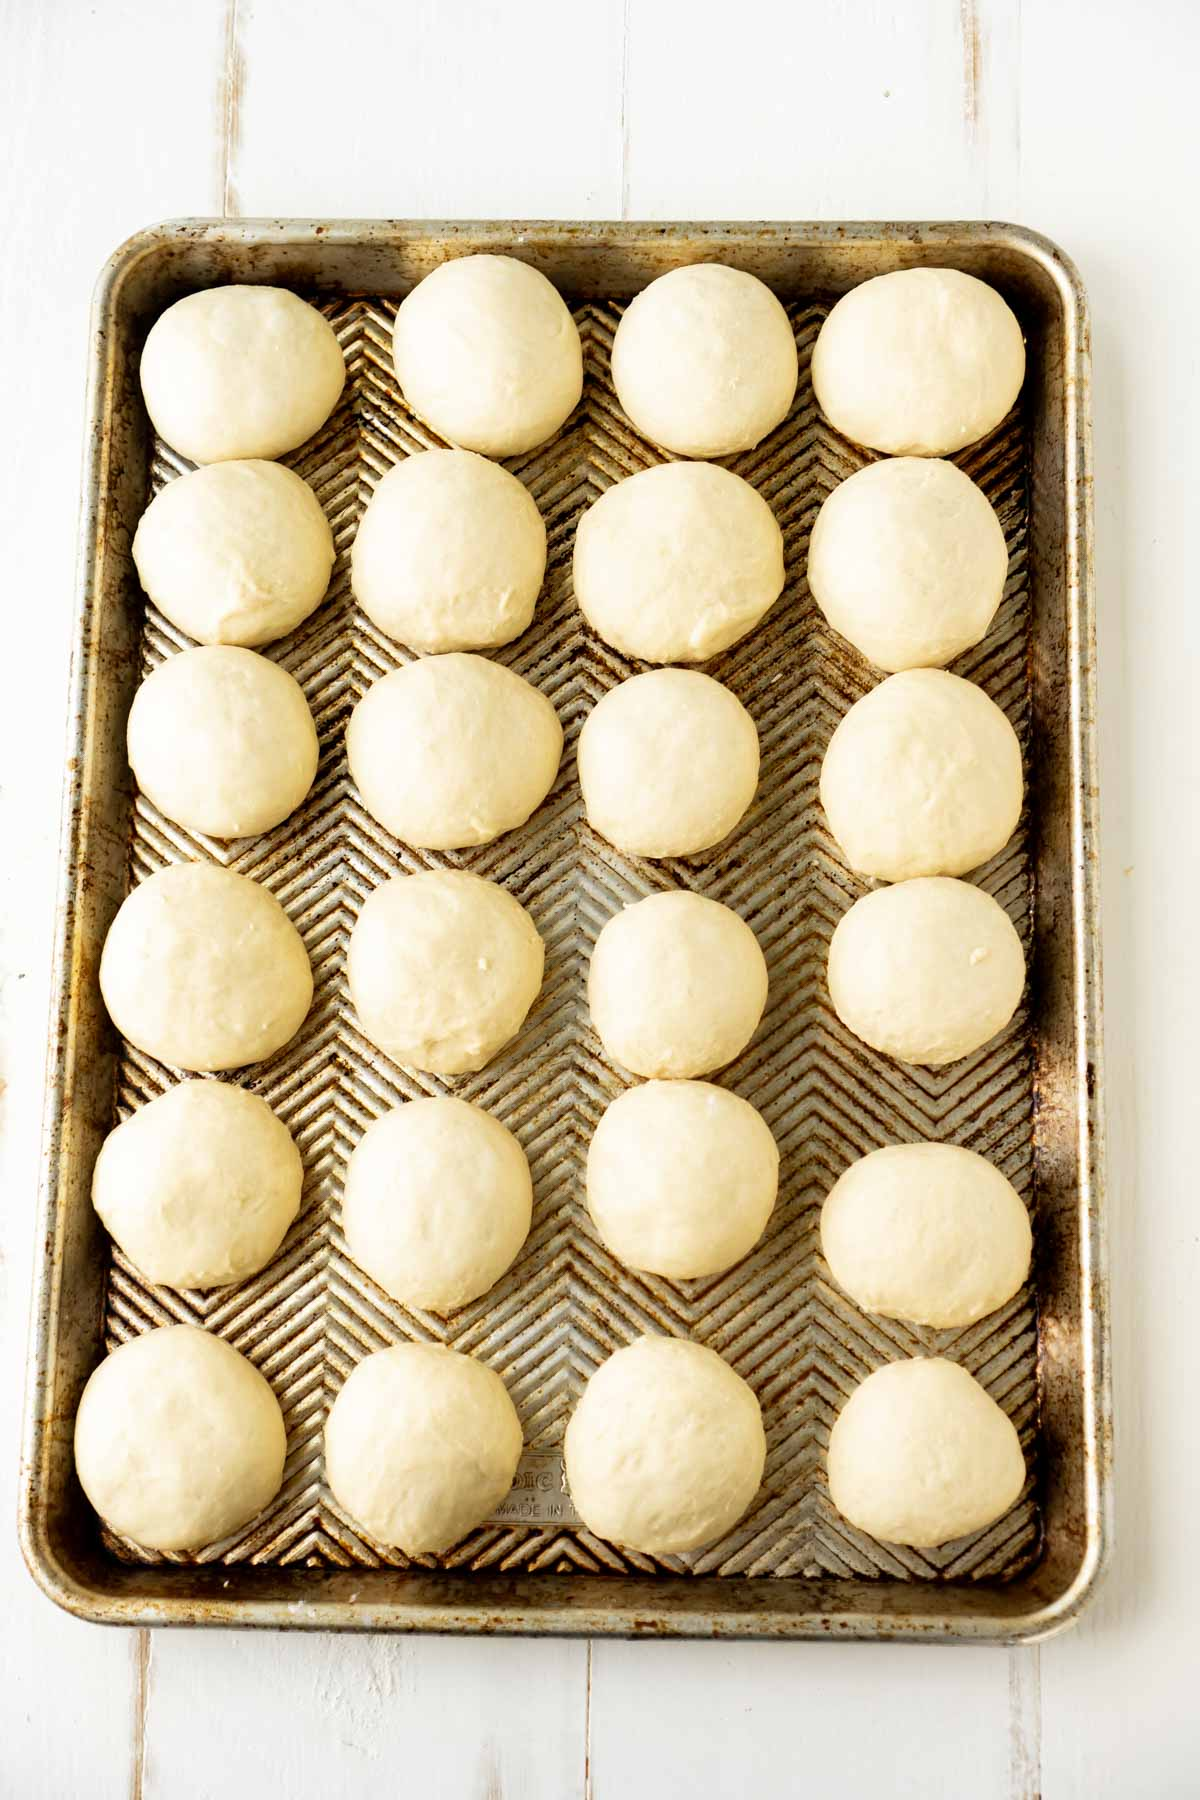 A sheet of homemade yeast rolls ready to be baked